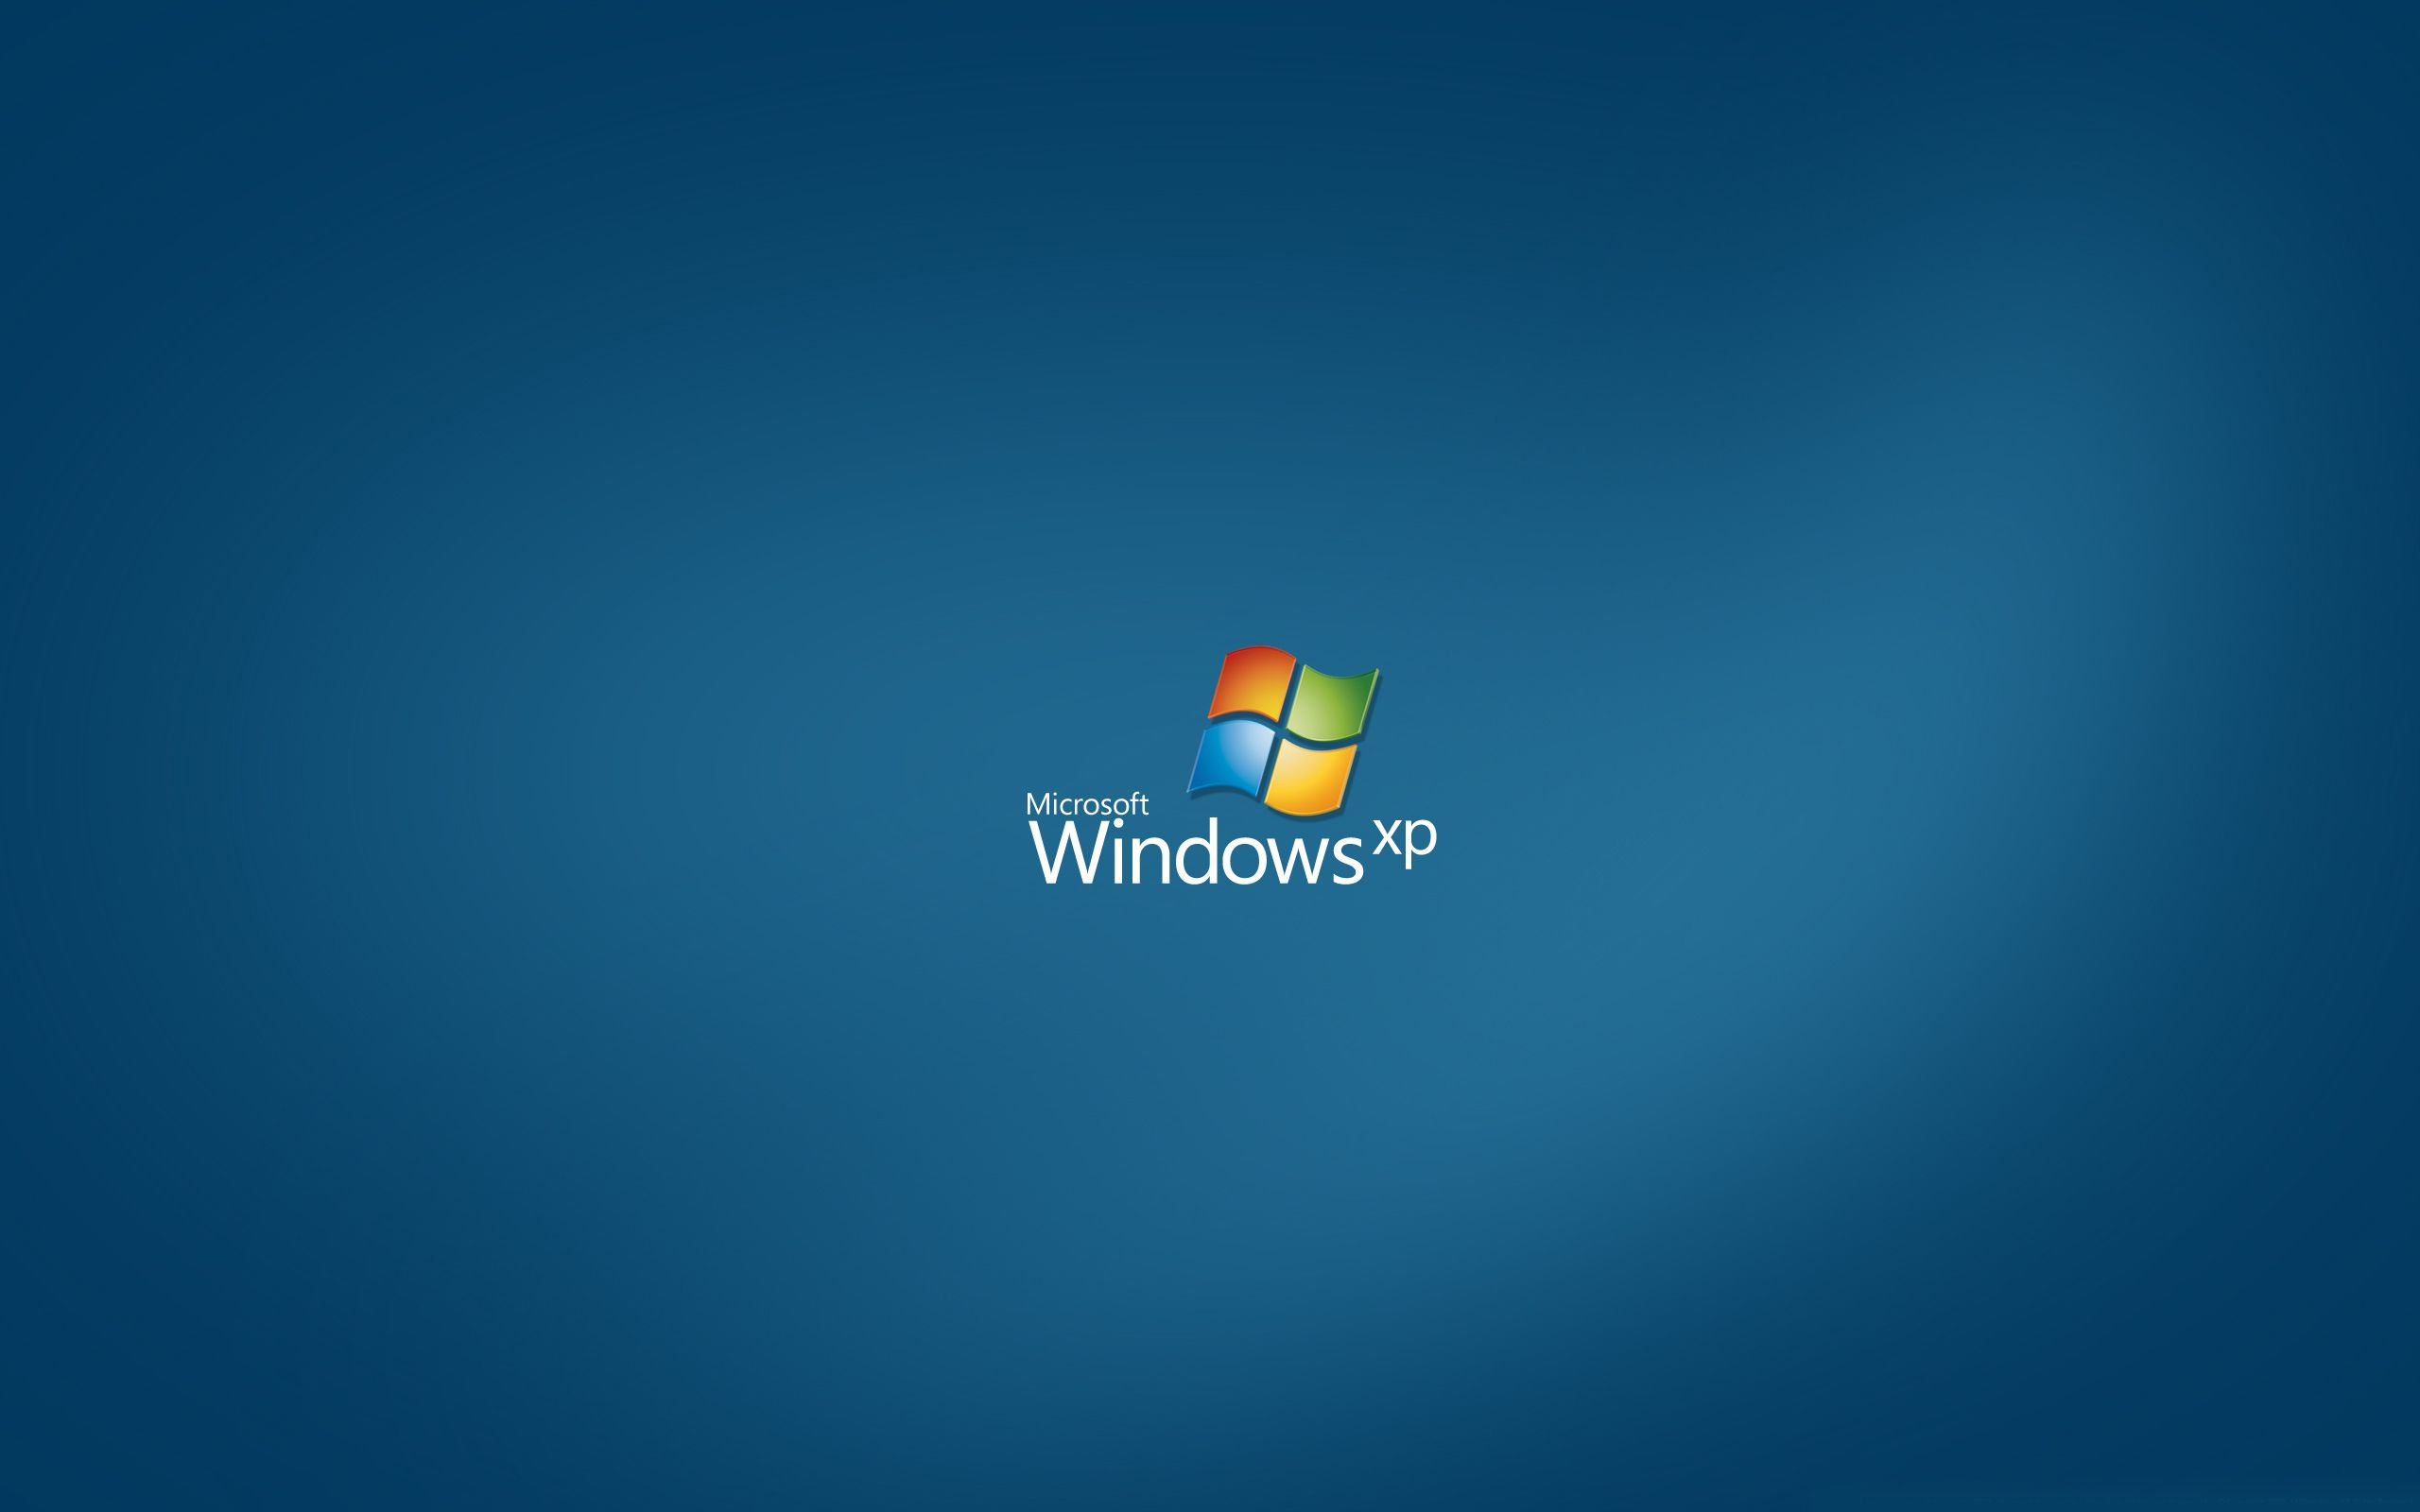 home » windows » windows xp hd wallpapers windows xp hd wallpapers